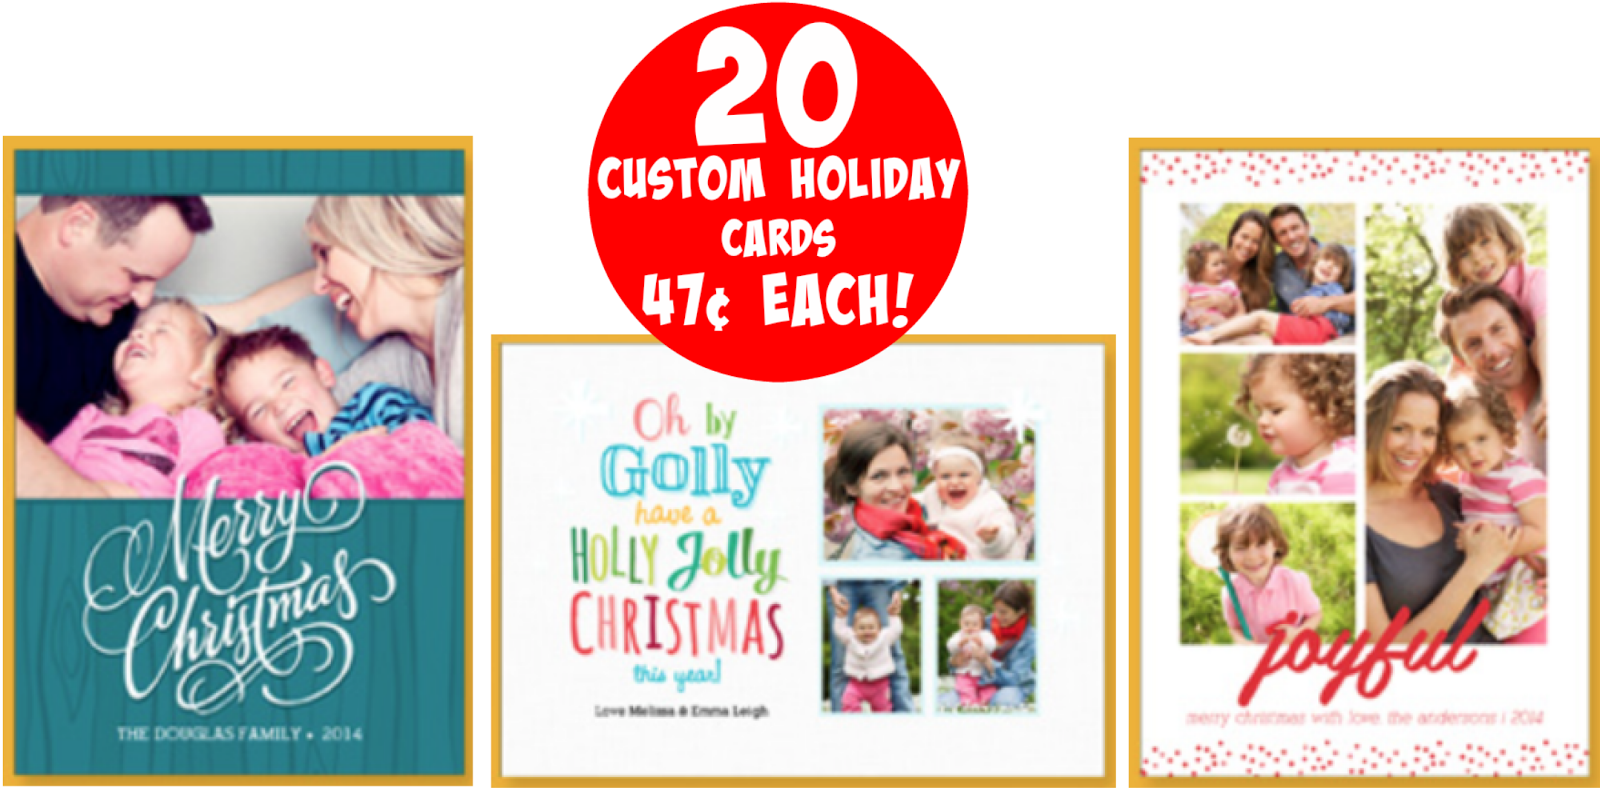 http://www.thebinderladies.com/2014/11/inkgarden-20-custom-holiday-cards-add.html